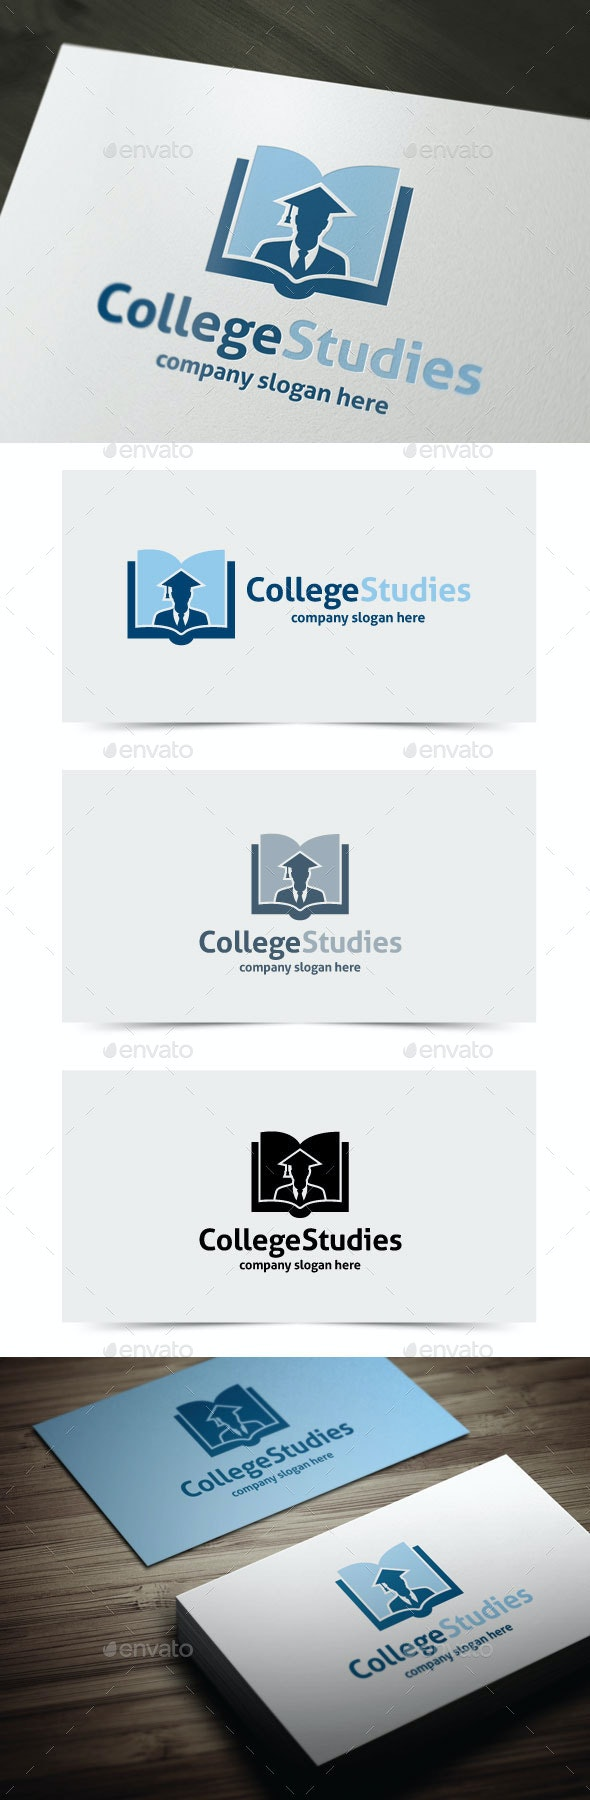 College Studies - College Logo Templates